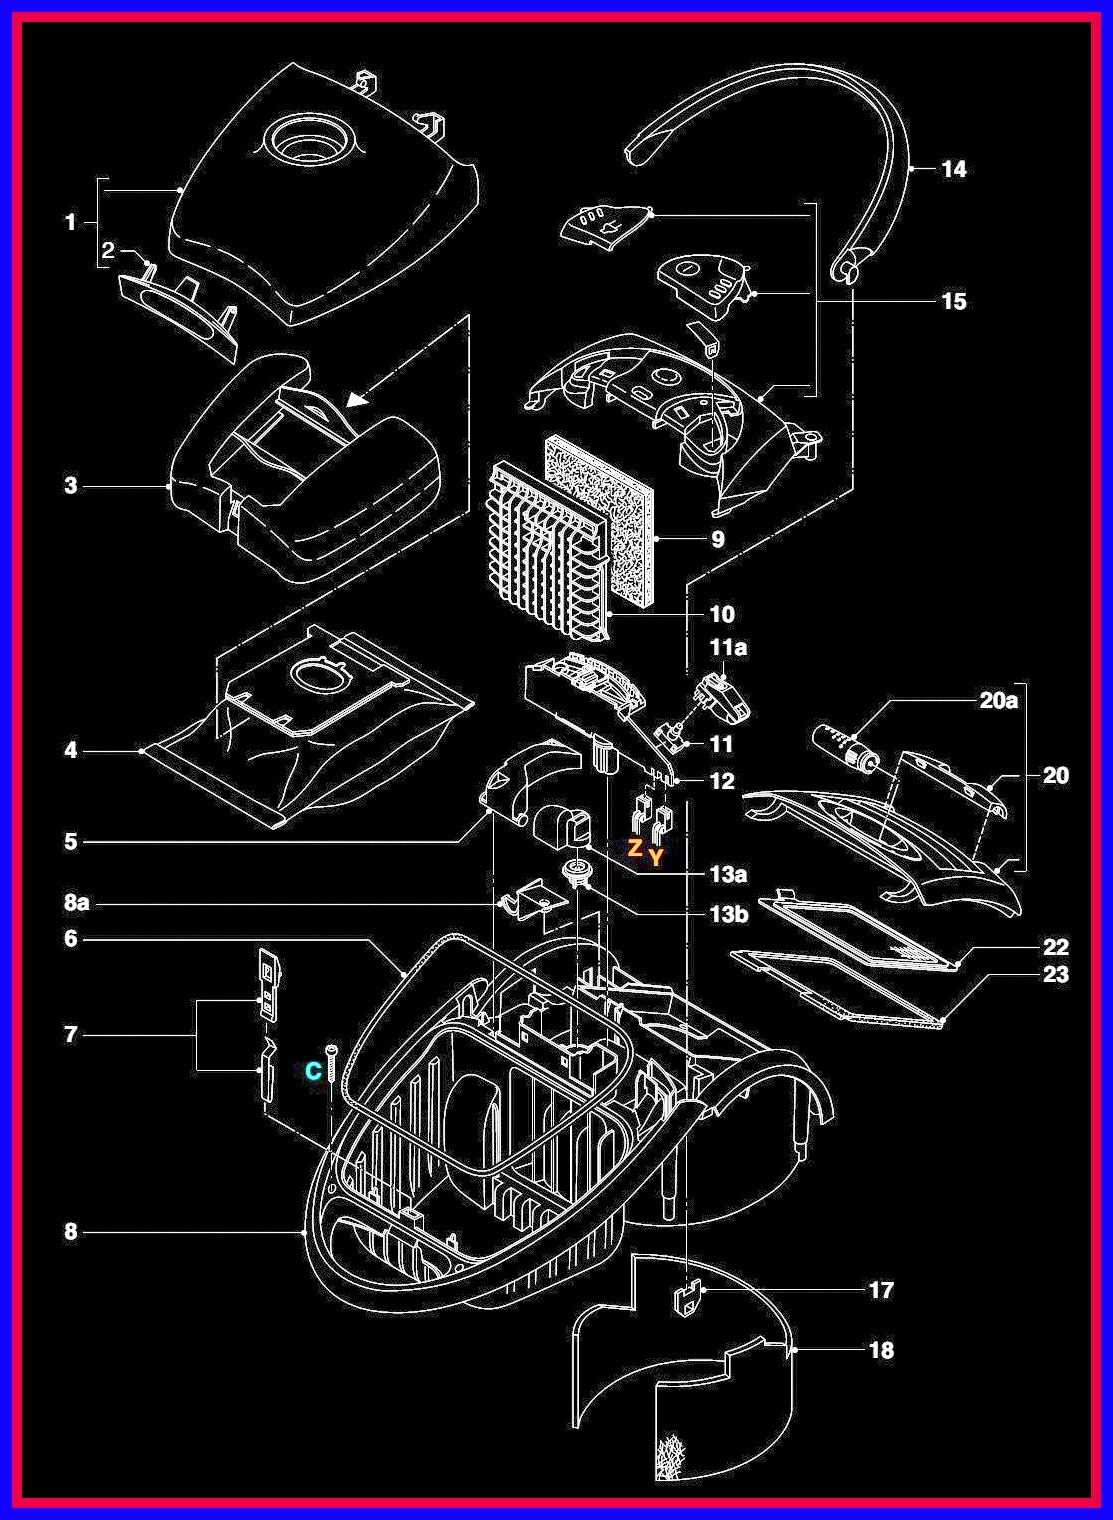 Electronic Equipment Repair Centre Philips Specialist Vacuum Cleaner Diagram Click On The Images To Zoom In